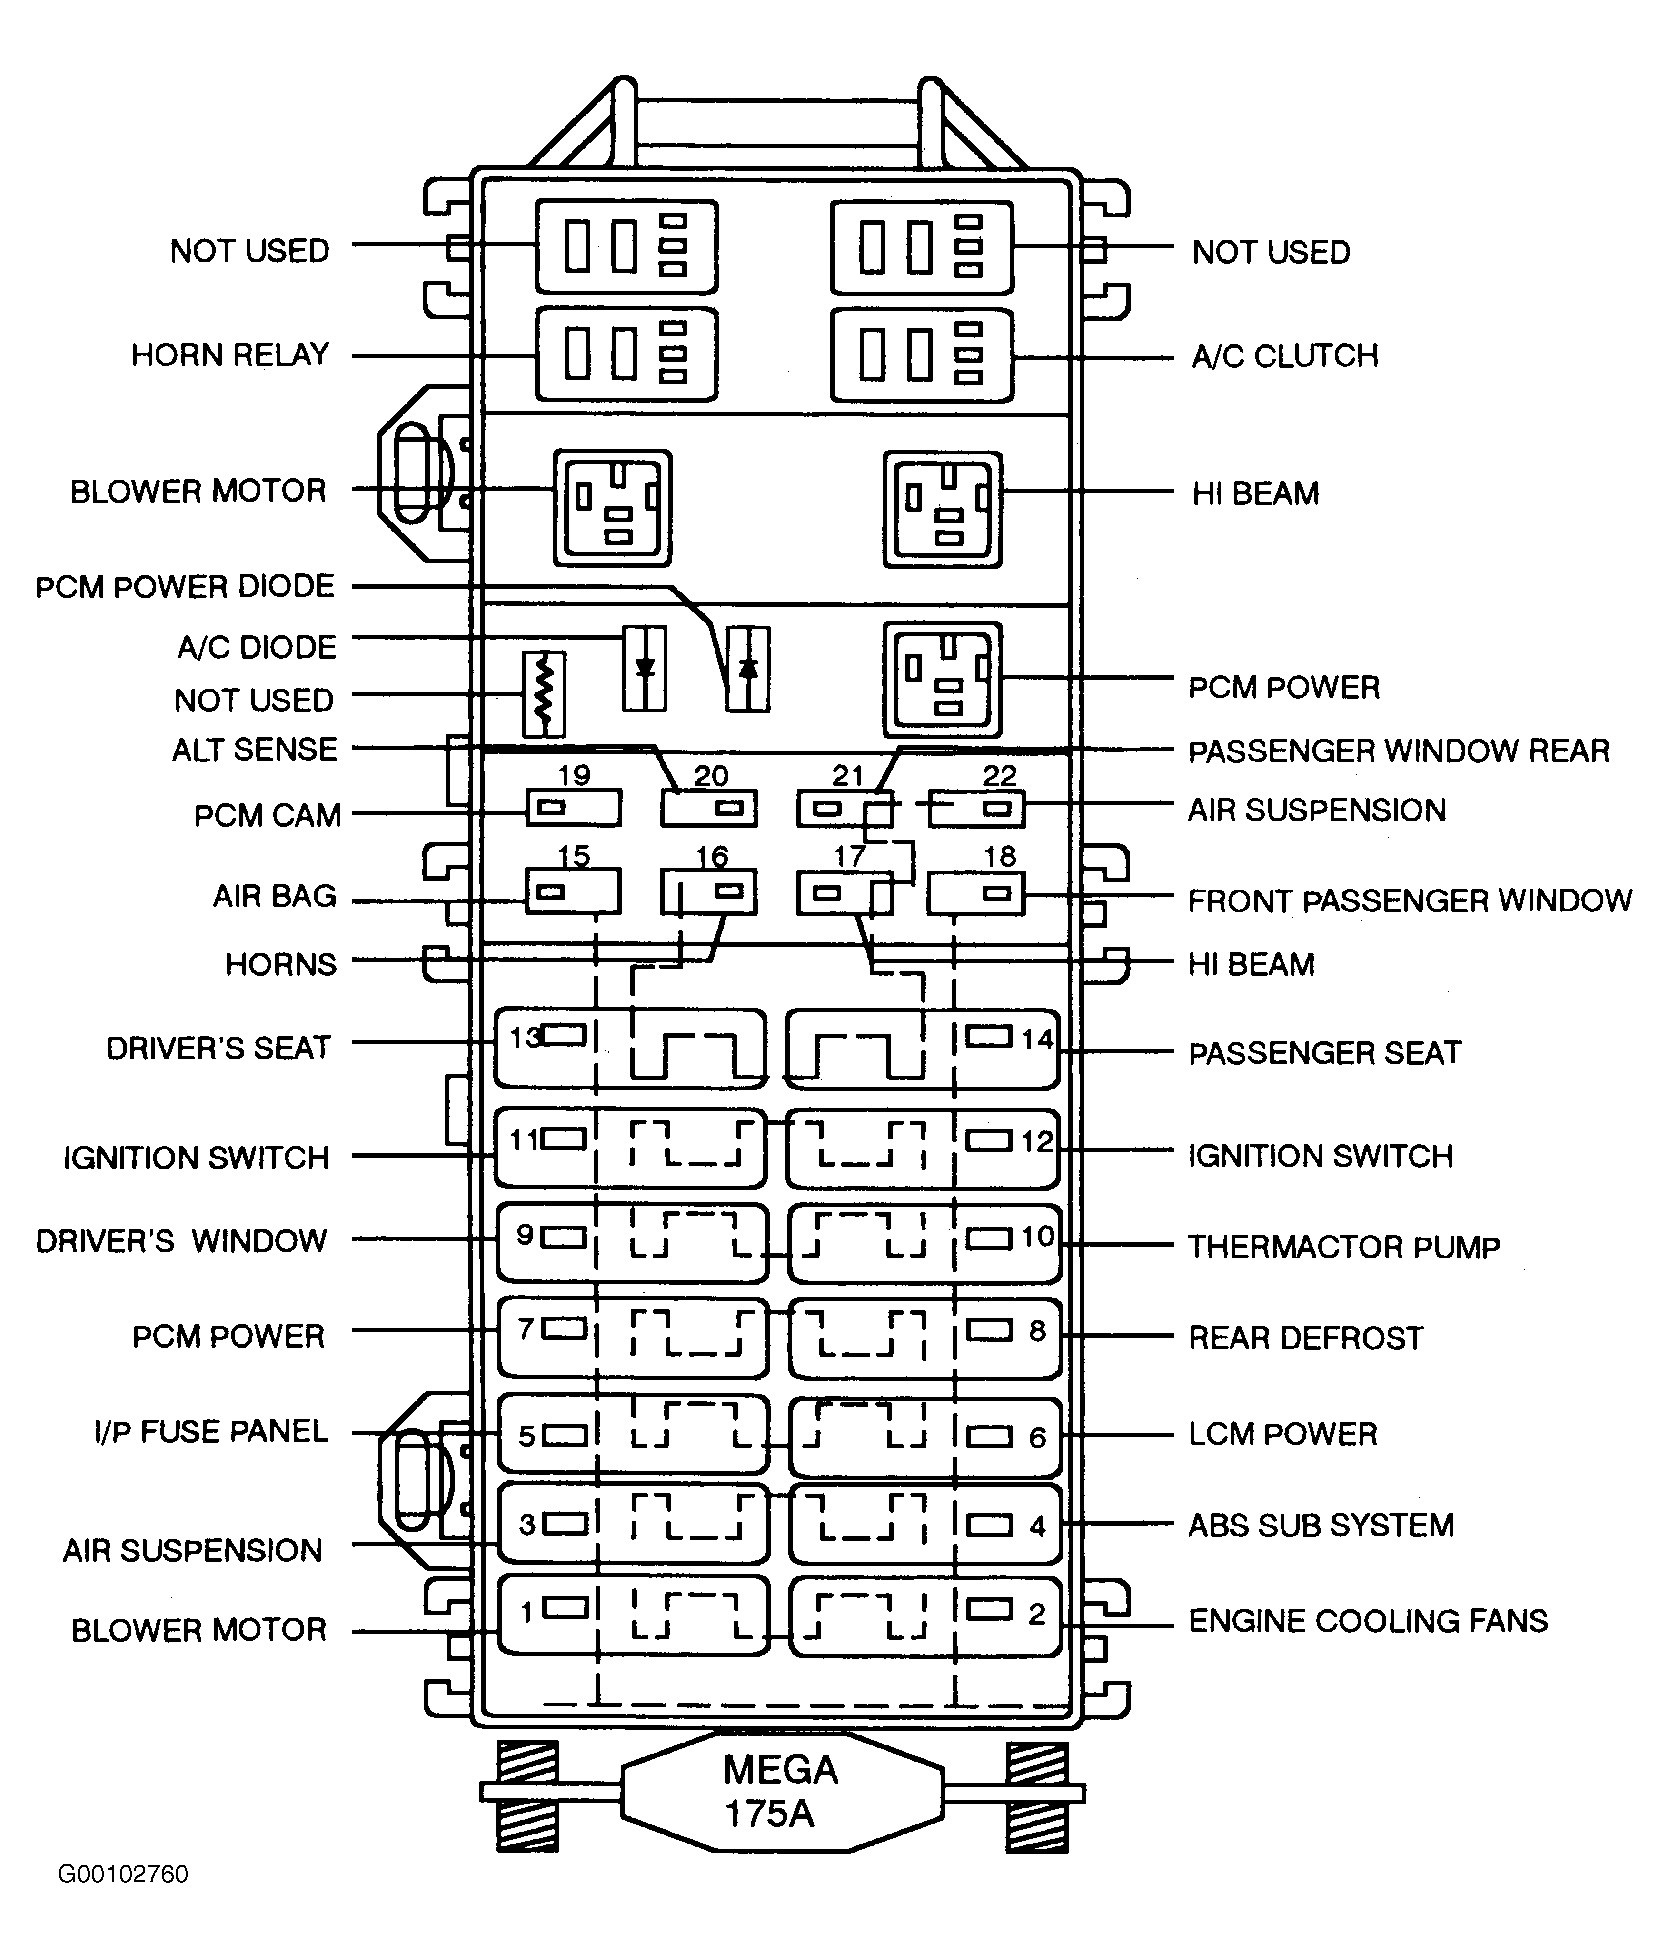 fuse diagram for 2006 mustang wiring diagram database. Black Bedroom Furniture Sets. Home Design Ideas